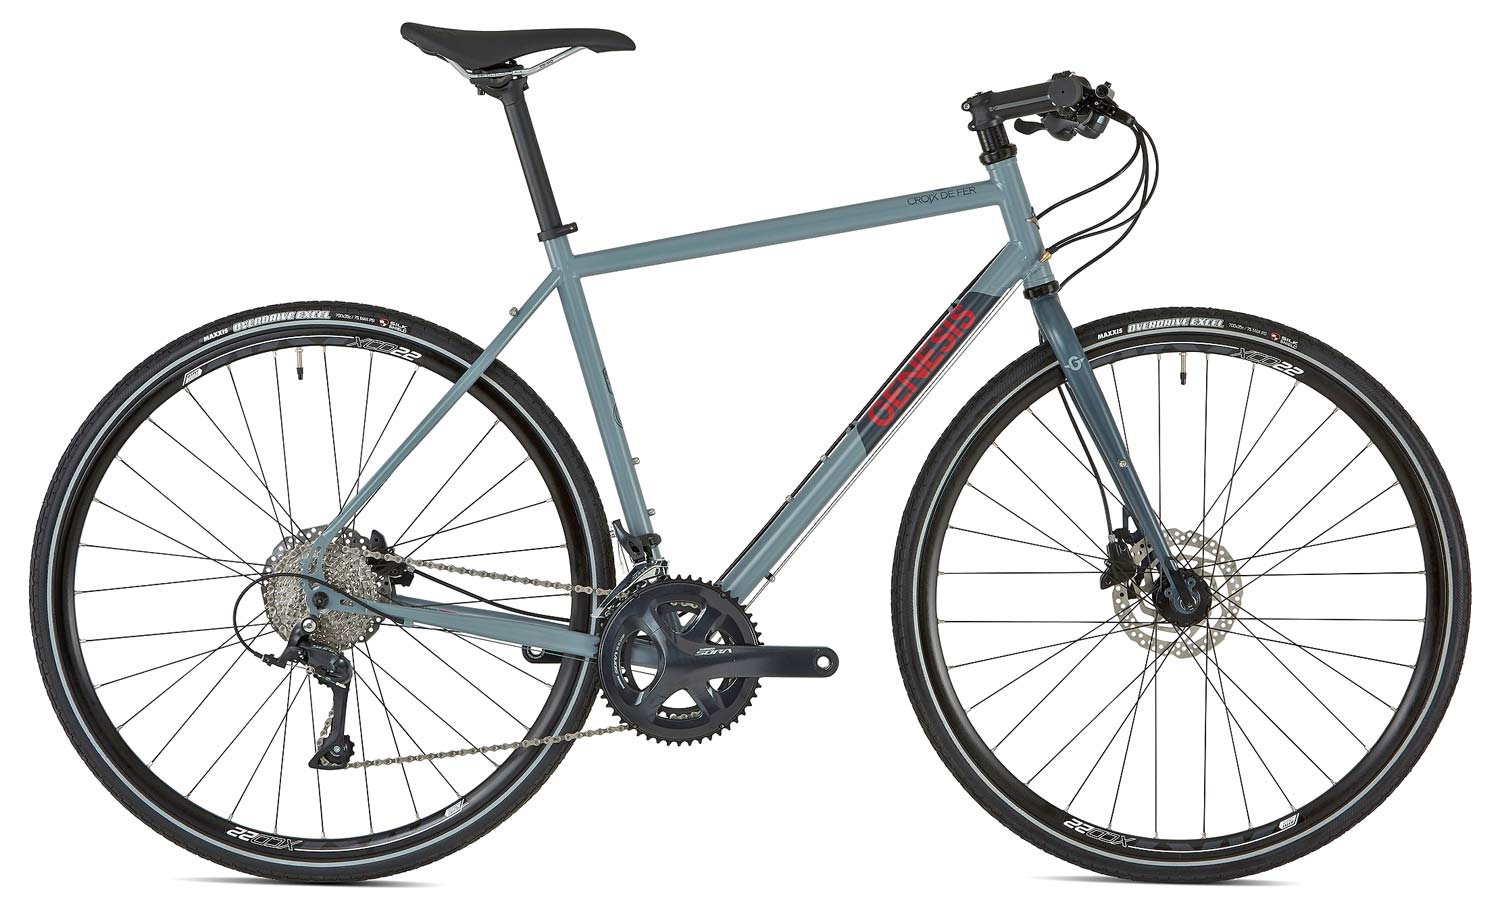 Early 2020 steel Genesis bikes for road & adventure, 1 1/8